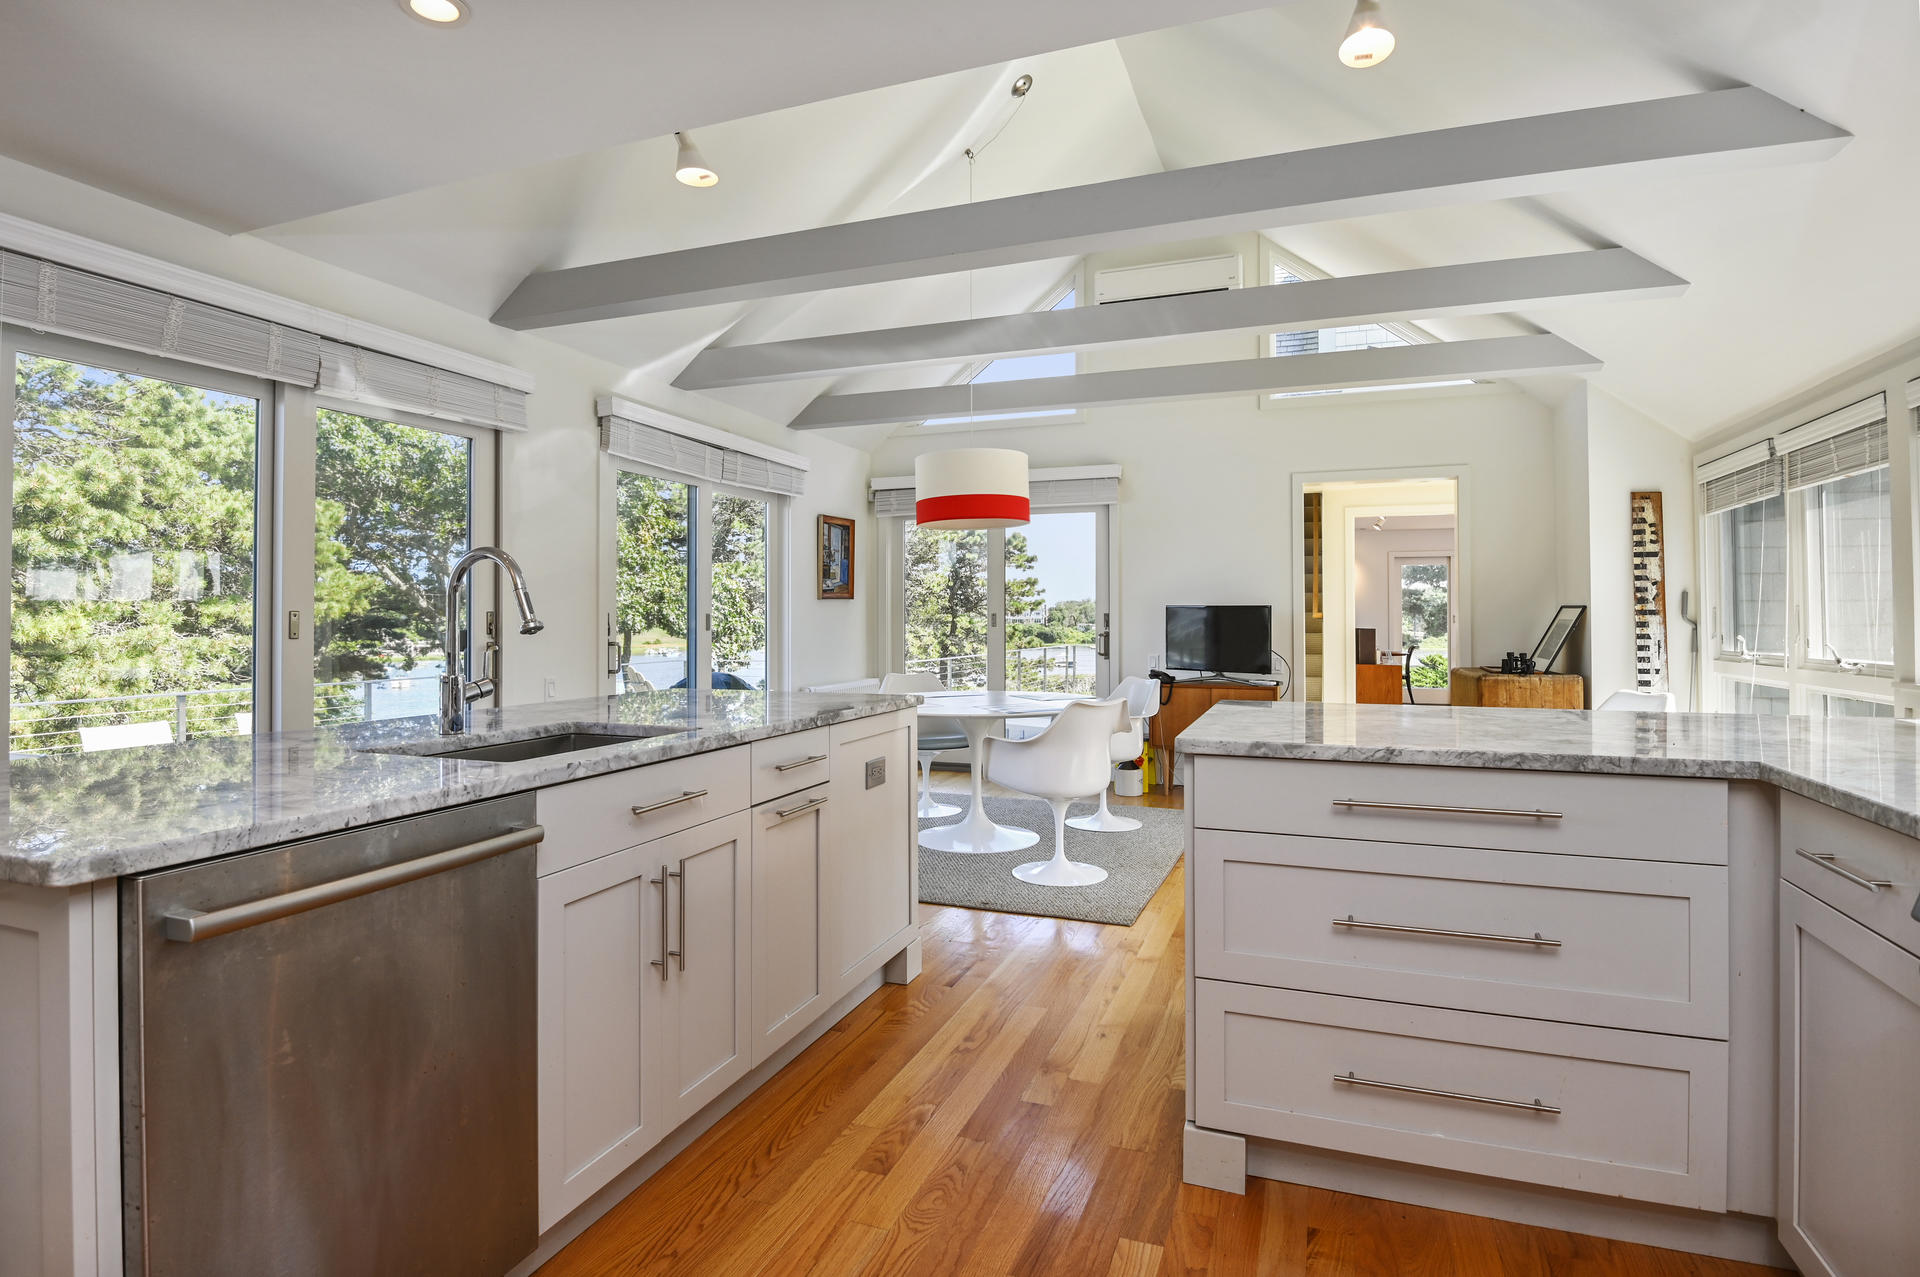 Swell 75 Grist Mill Lane Chatham Ma 02633 Mls Number 21905677 Download Free Architecture Designs Xerocsunscenecom